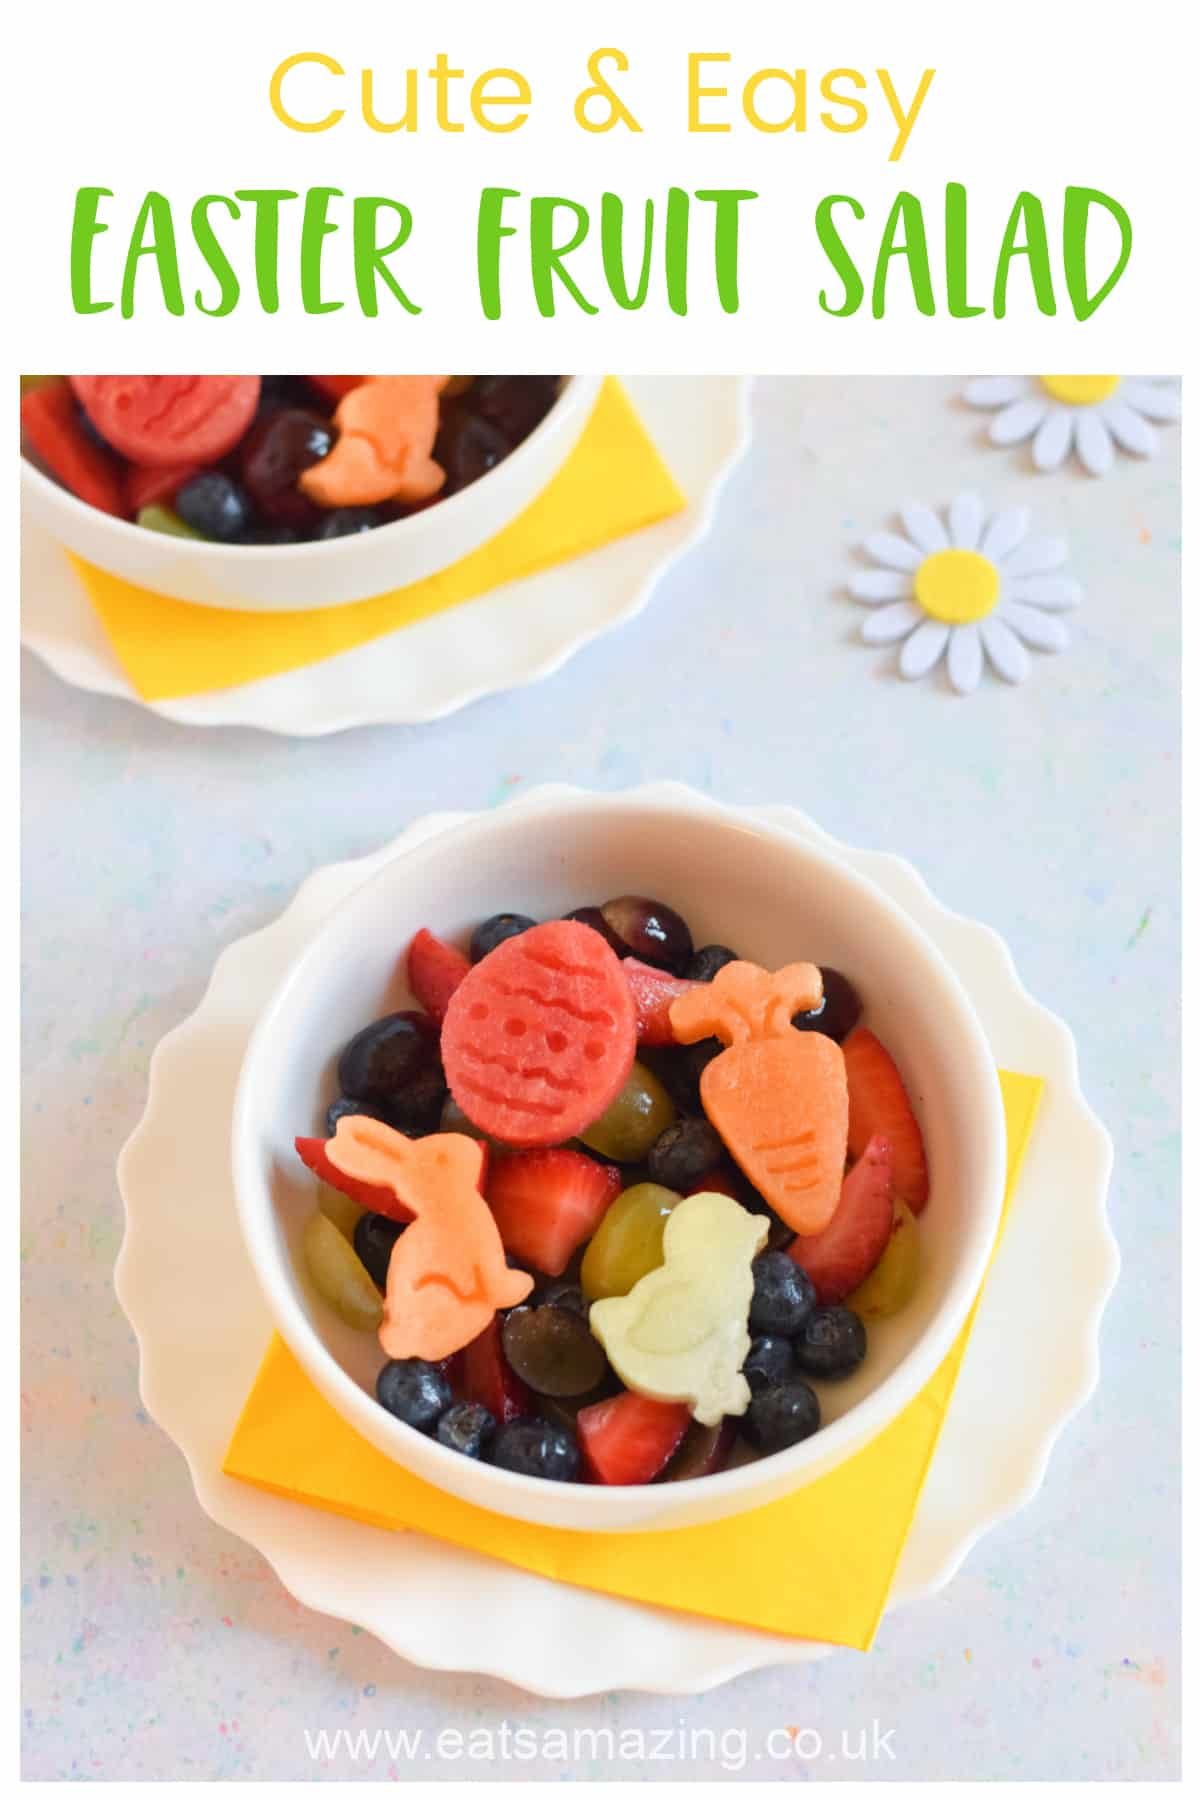 How to make a cute and easy Easter Fruit Salad - healthy Easter dessert idea for kids